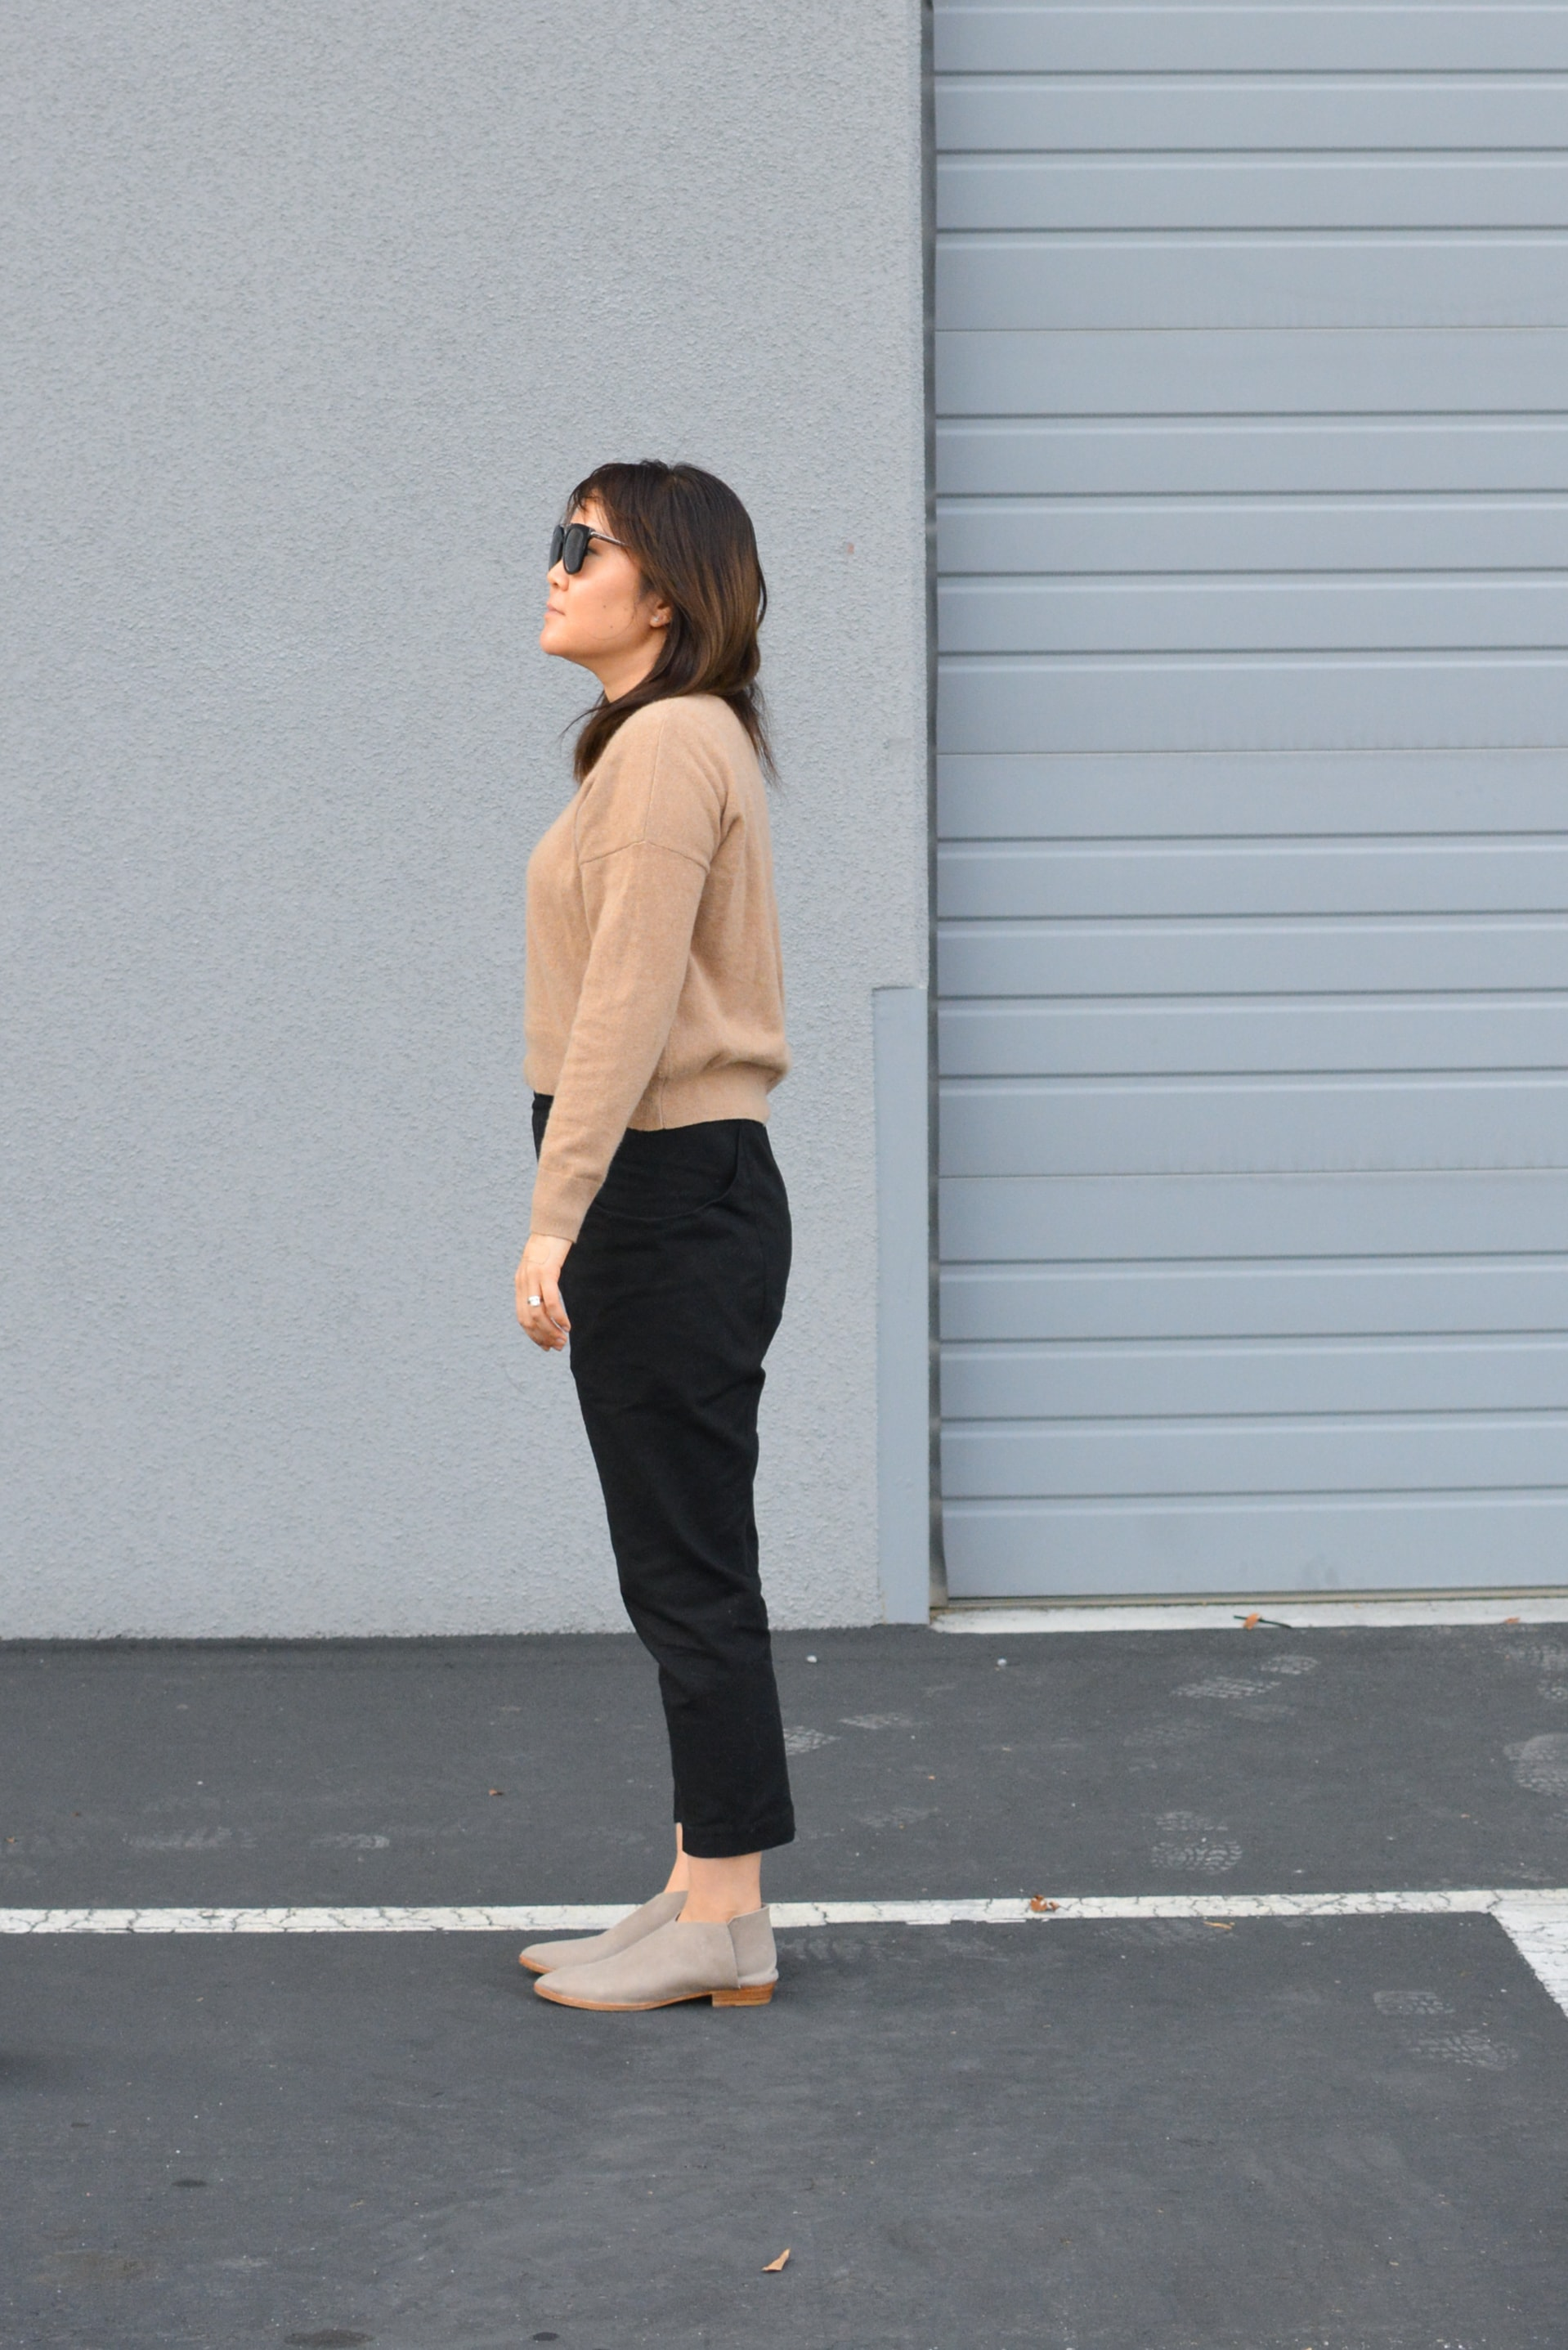 Elizabeth Suzann Review The Clyde Work Pants (4 of 4)-min.jpg